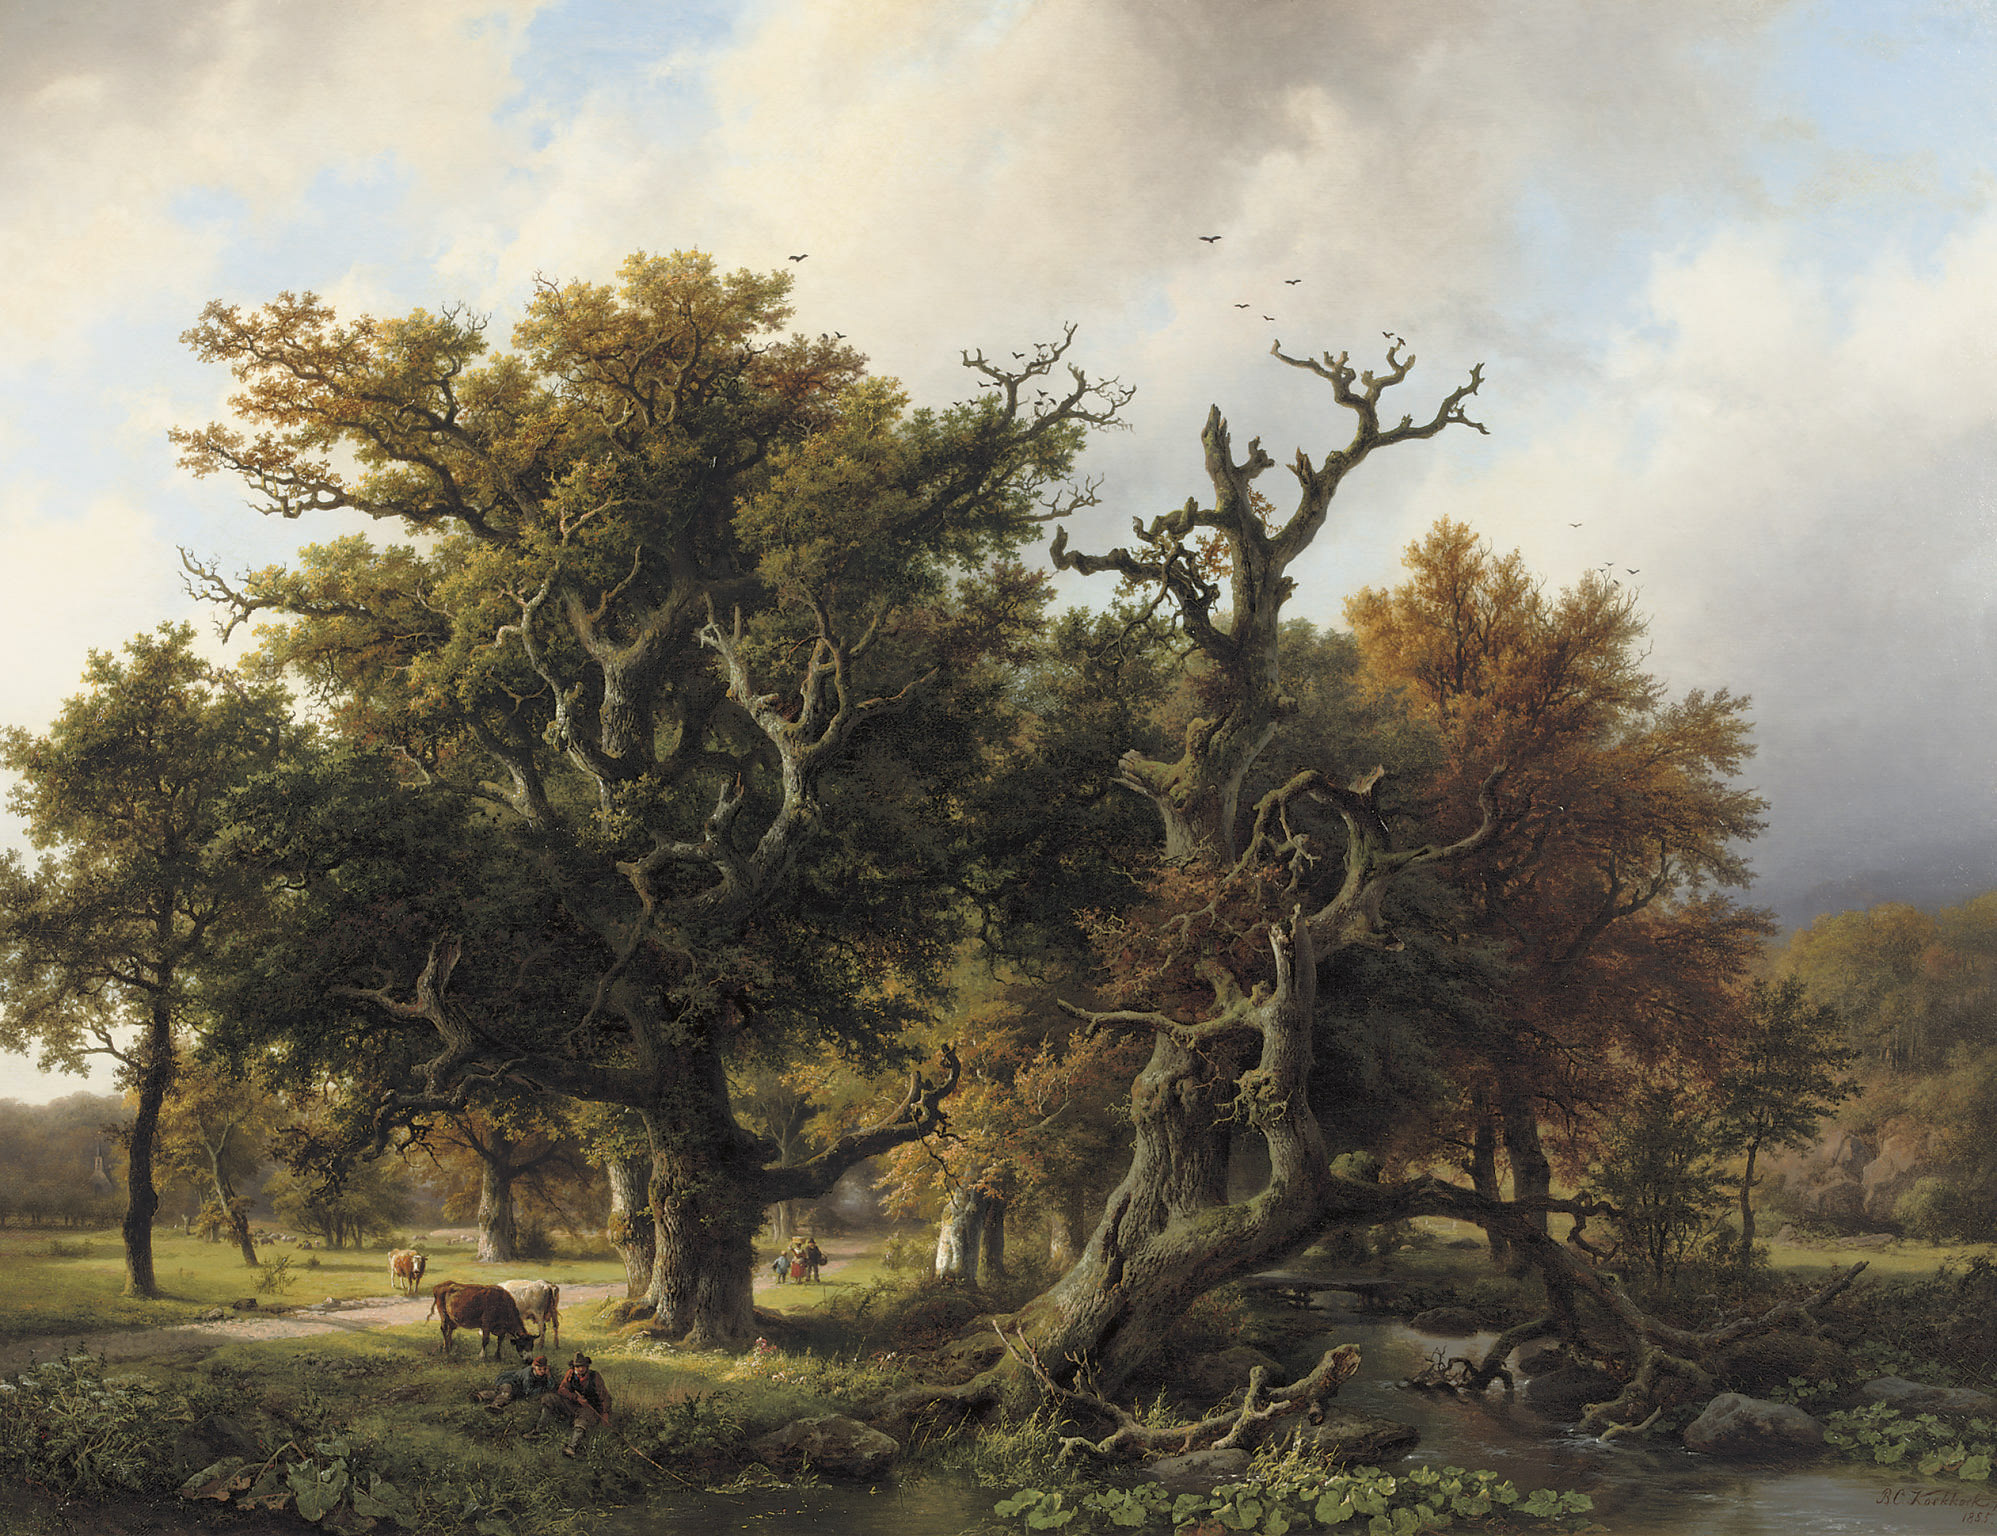 A wooded landscape with an angler and cattle grazing